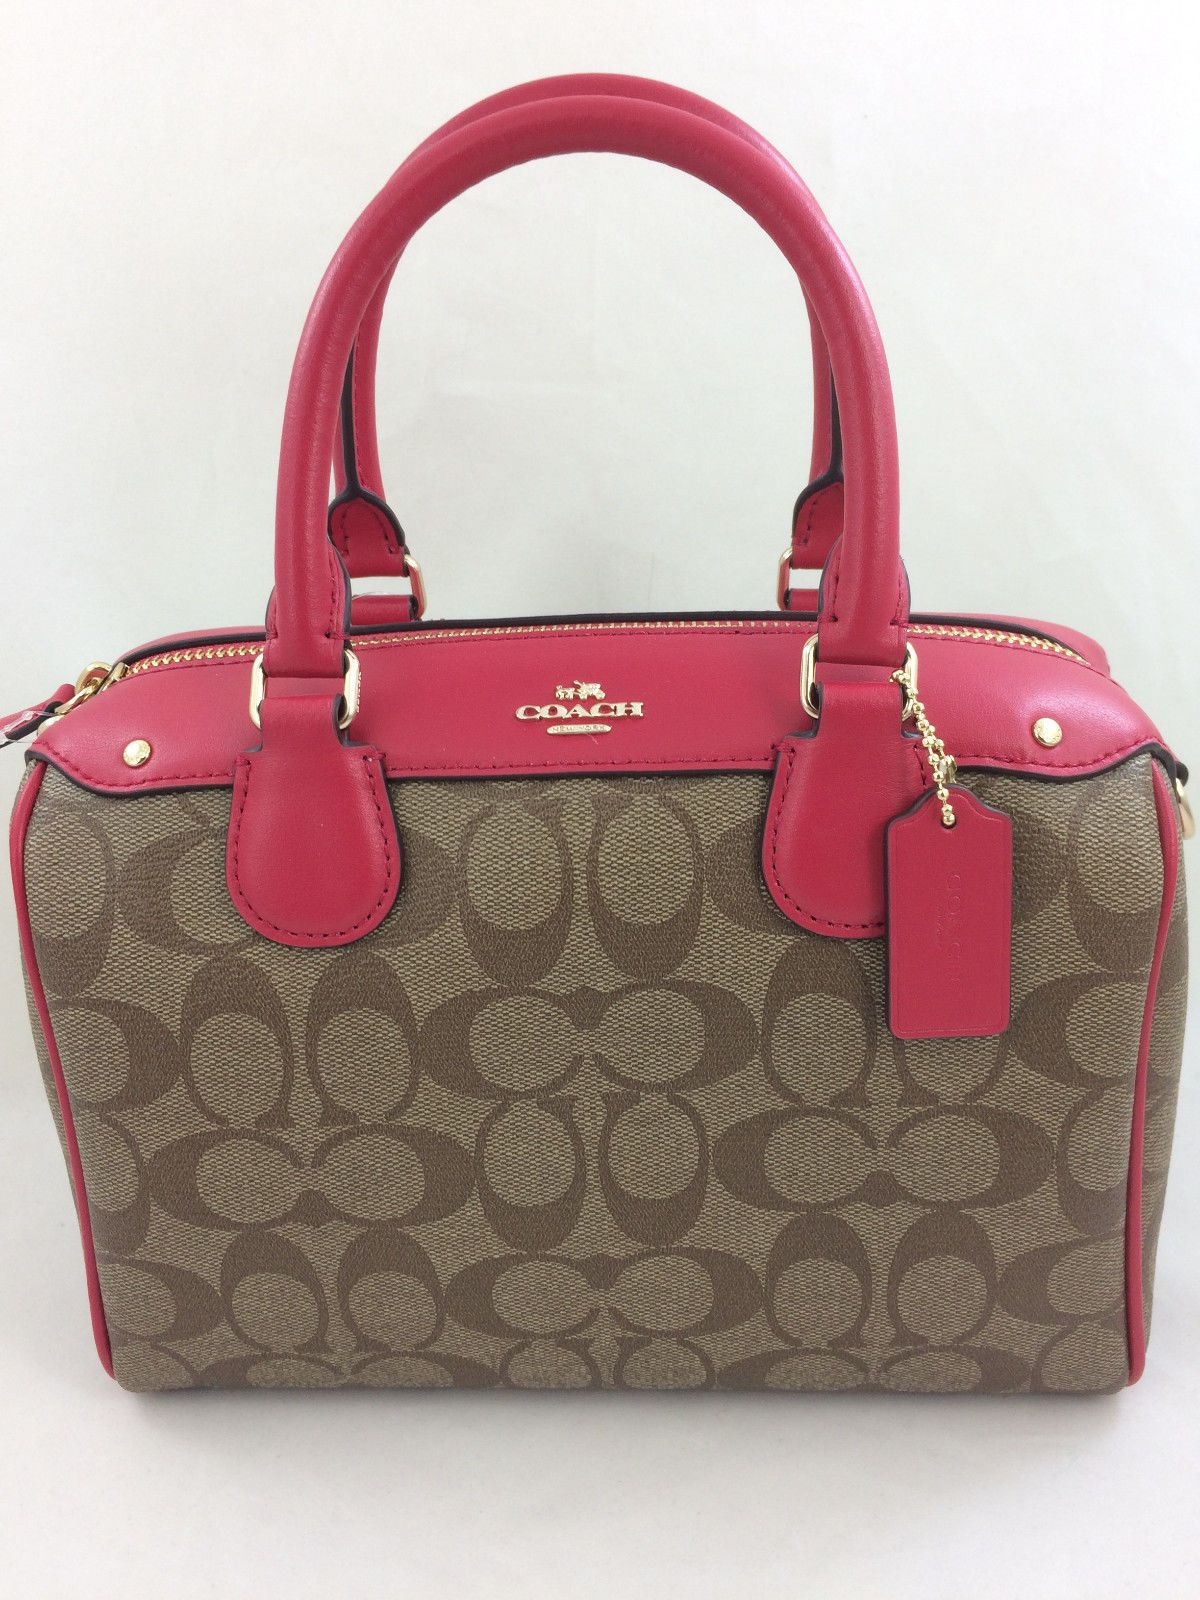 61187b0062ee3 New Coach F58312 F36702 Mini Bennett Satchel Handbag Purse Shoulder Bag PVC  Pink